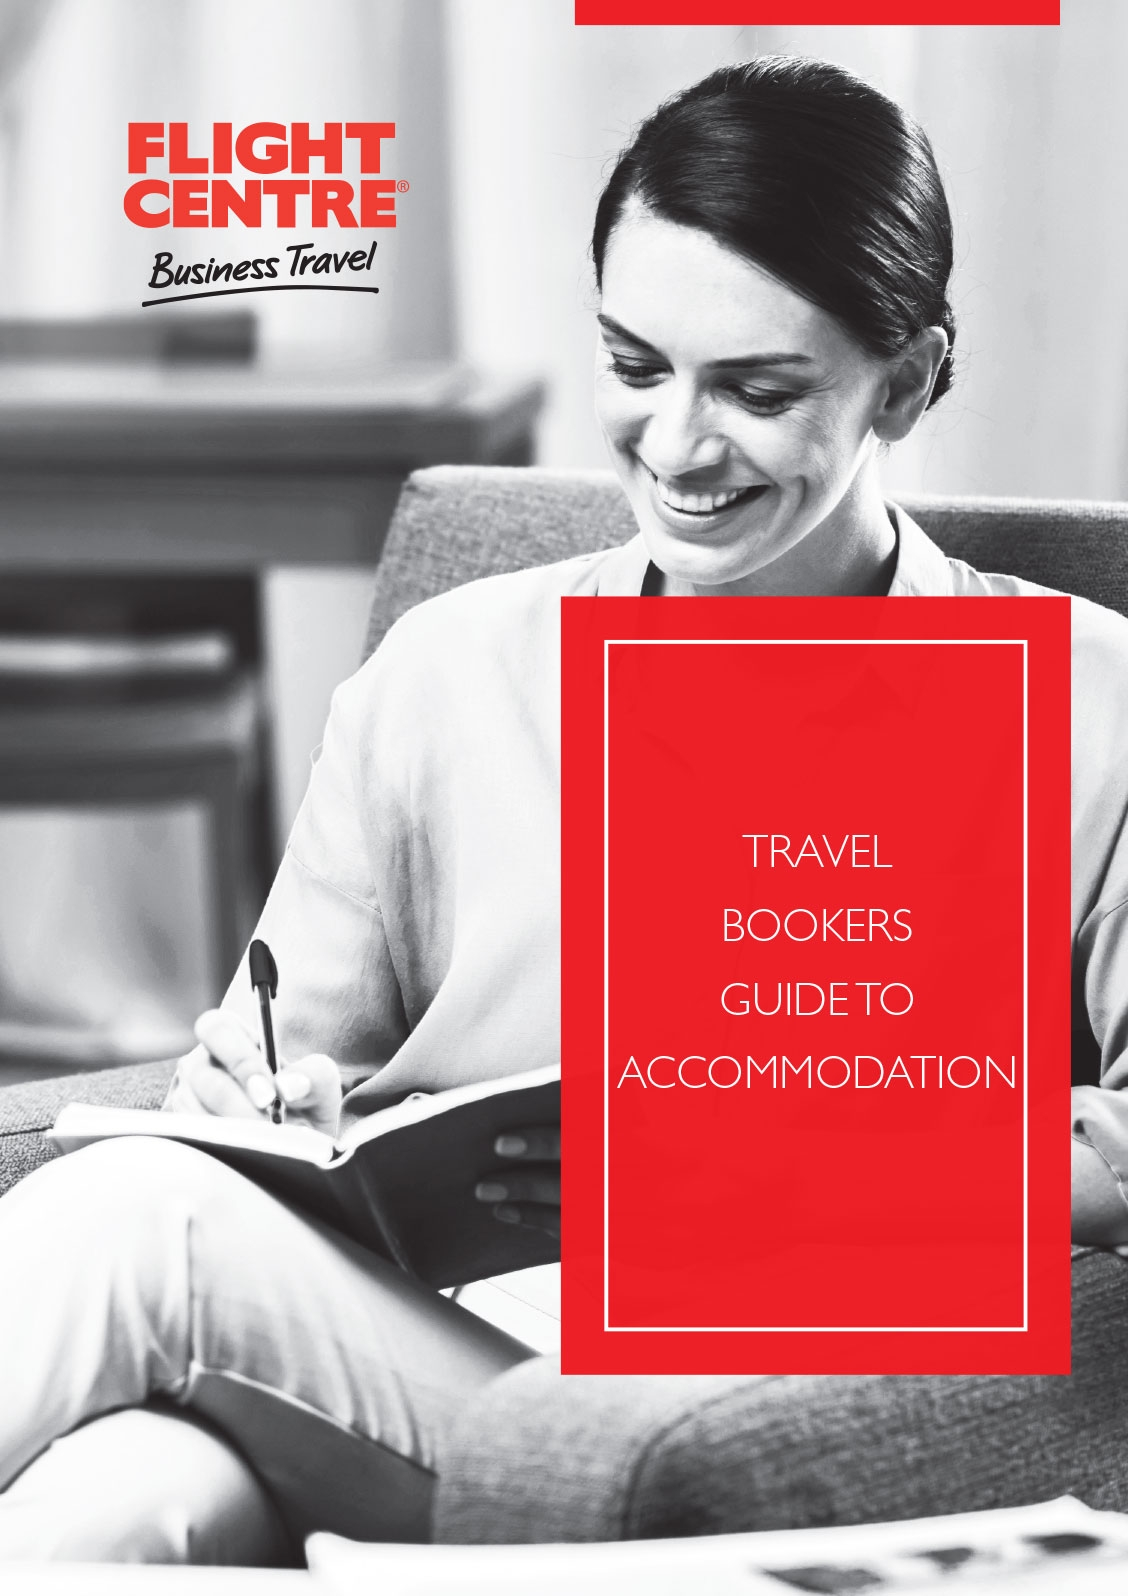 Travel Booker's Guide to Accommodation